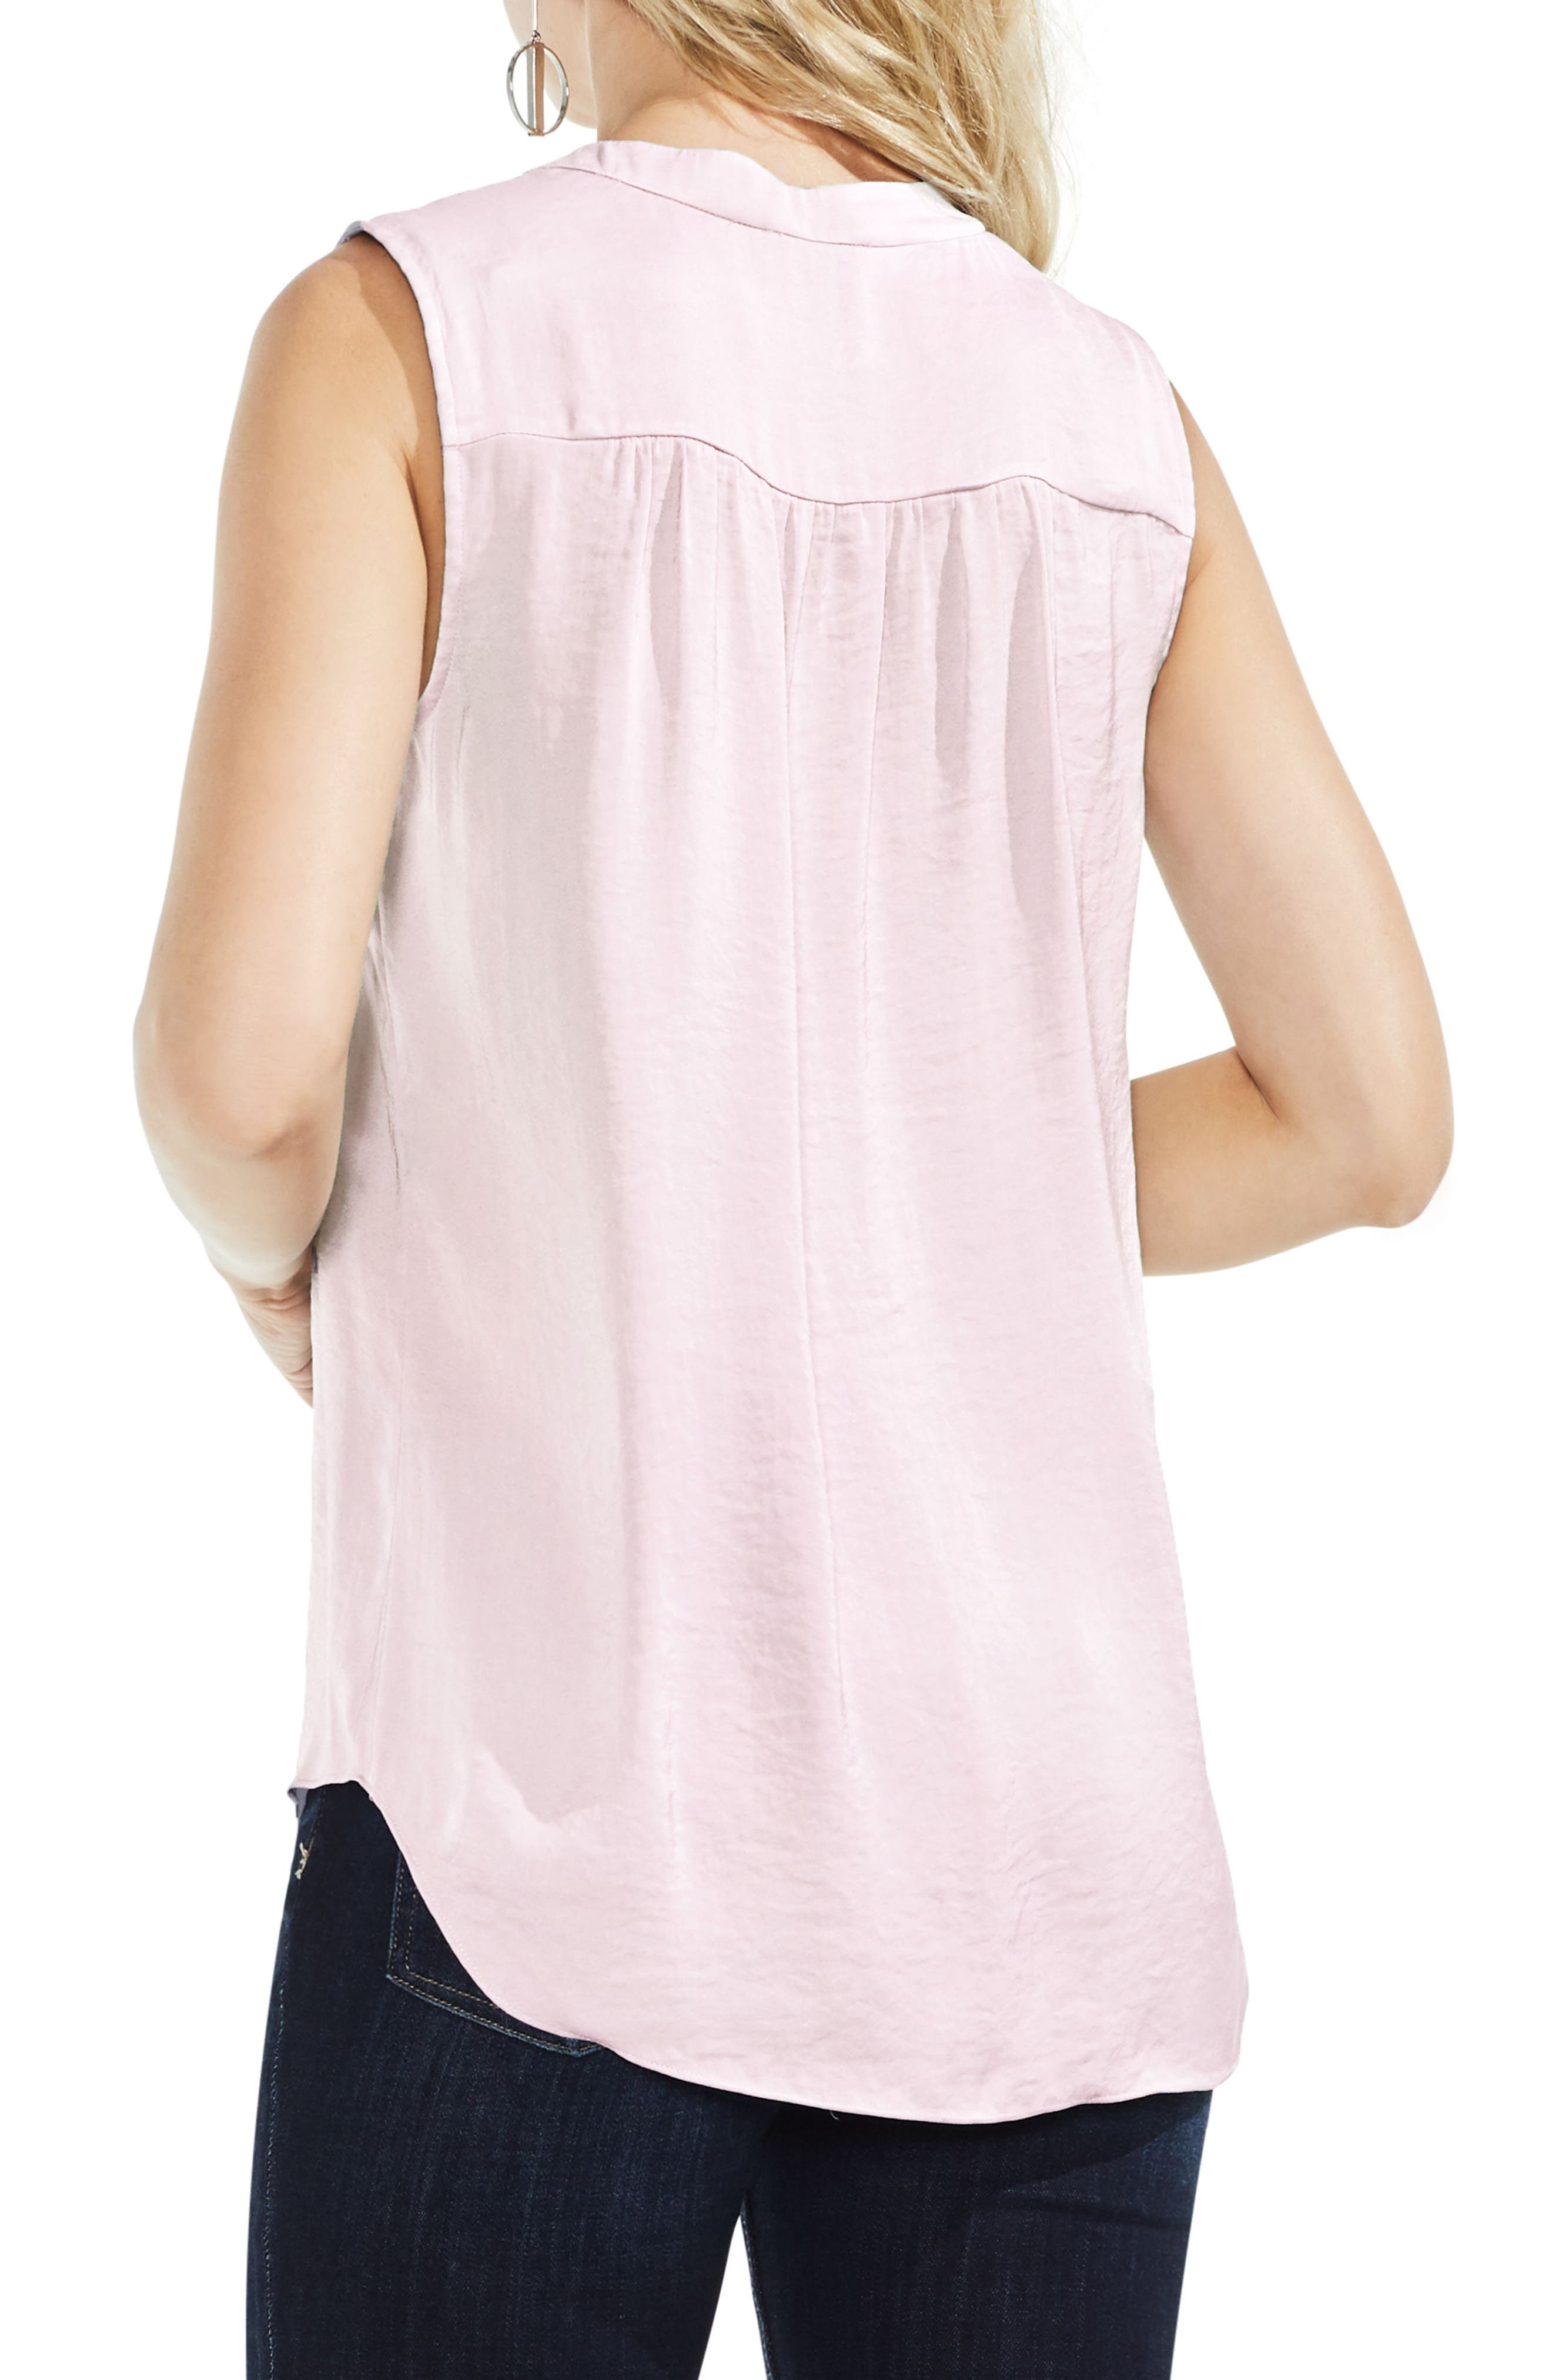 VINCE CAMUTO, Rumpled Satin Blouse, Alternate thumbnail 2, color, PINK BLISS